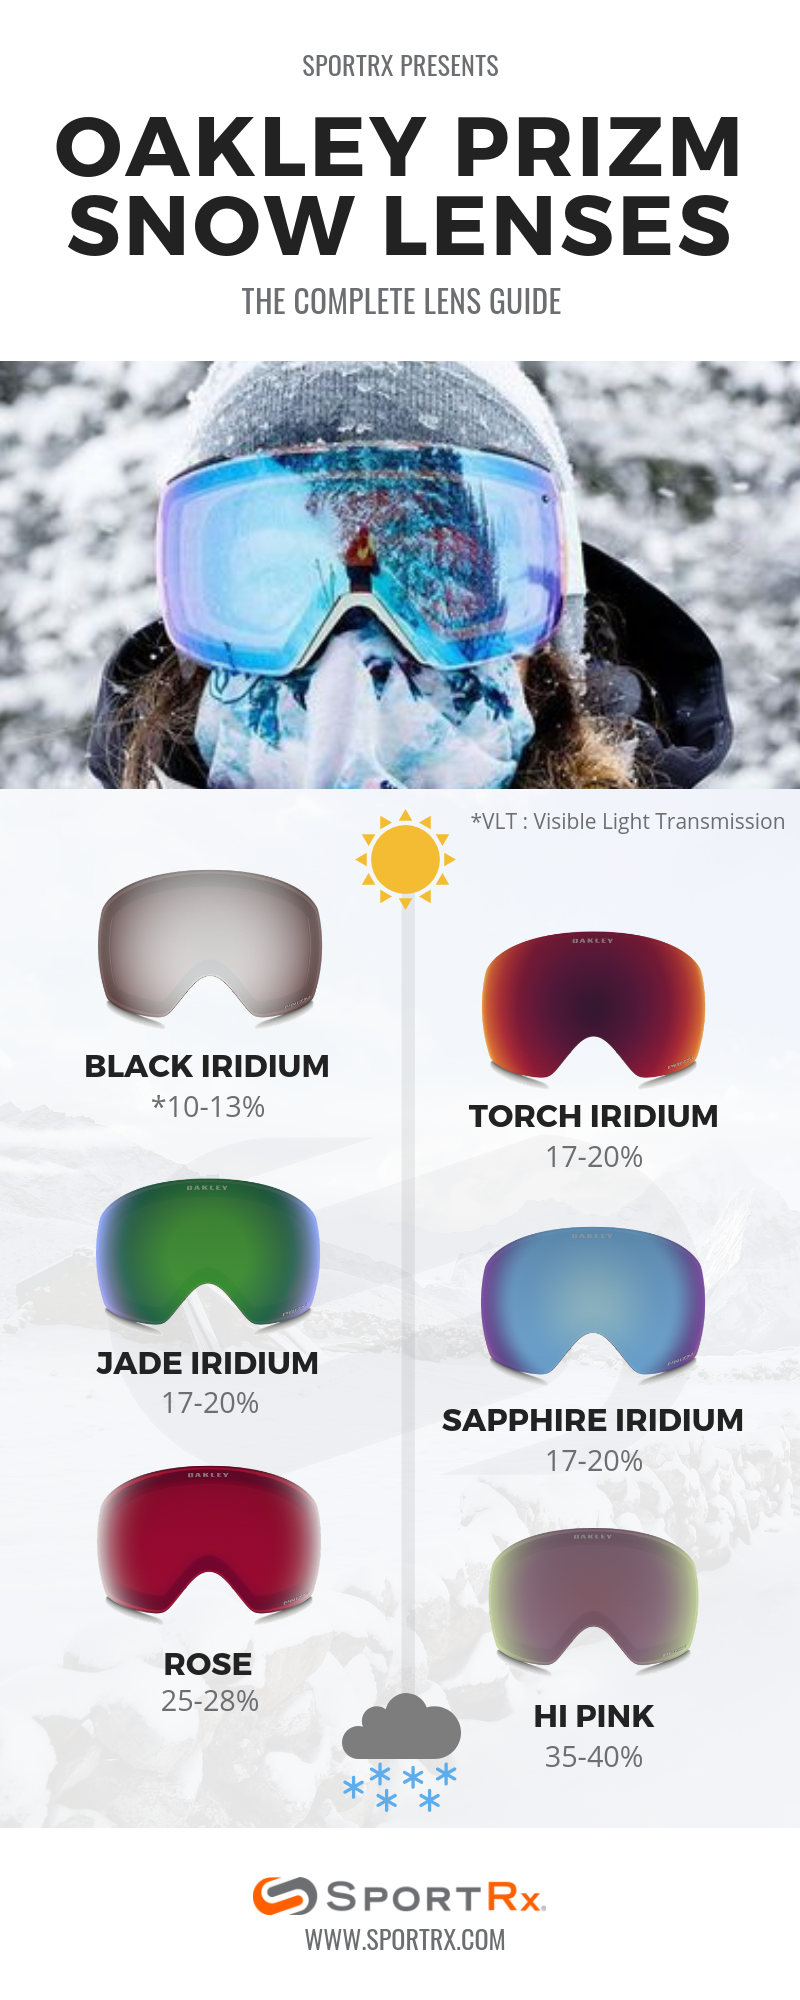 fd3687b87b0 Oakley PRIZM lens technology introduces a new way of looking at  goggles...literally. PRIZM Snow tailors the lens and tints to specific  environments and ...